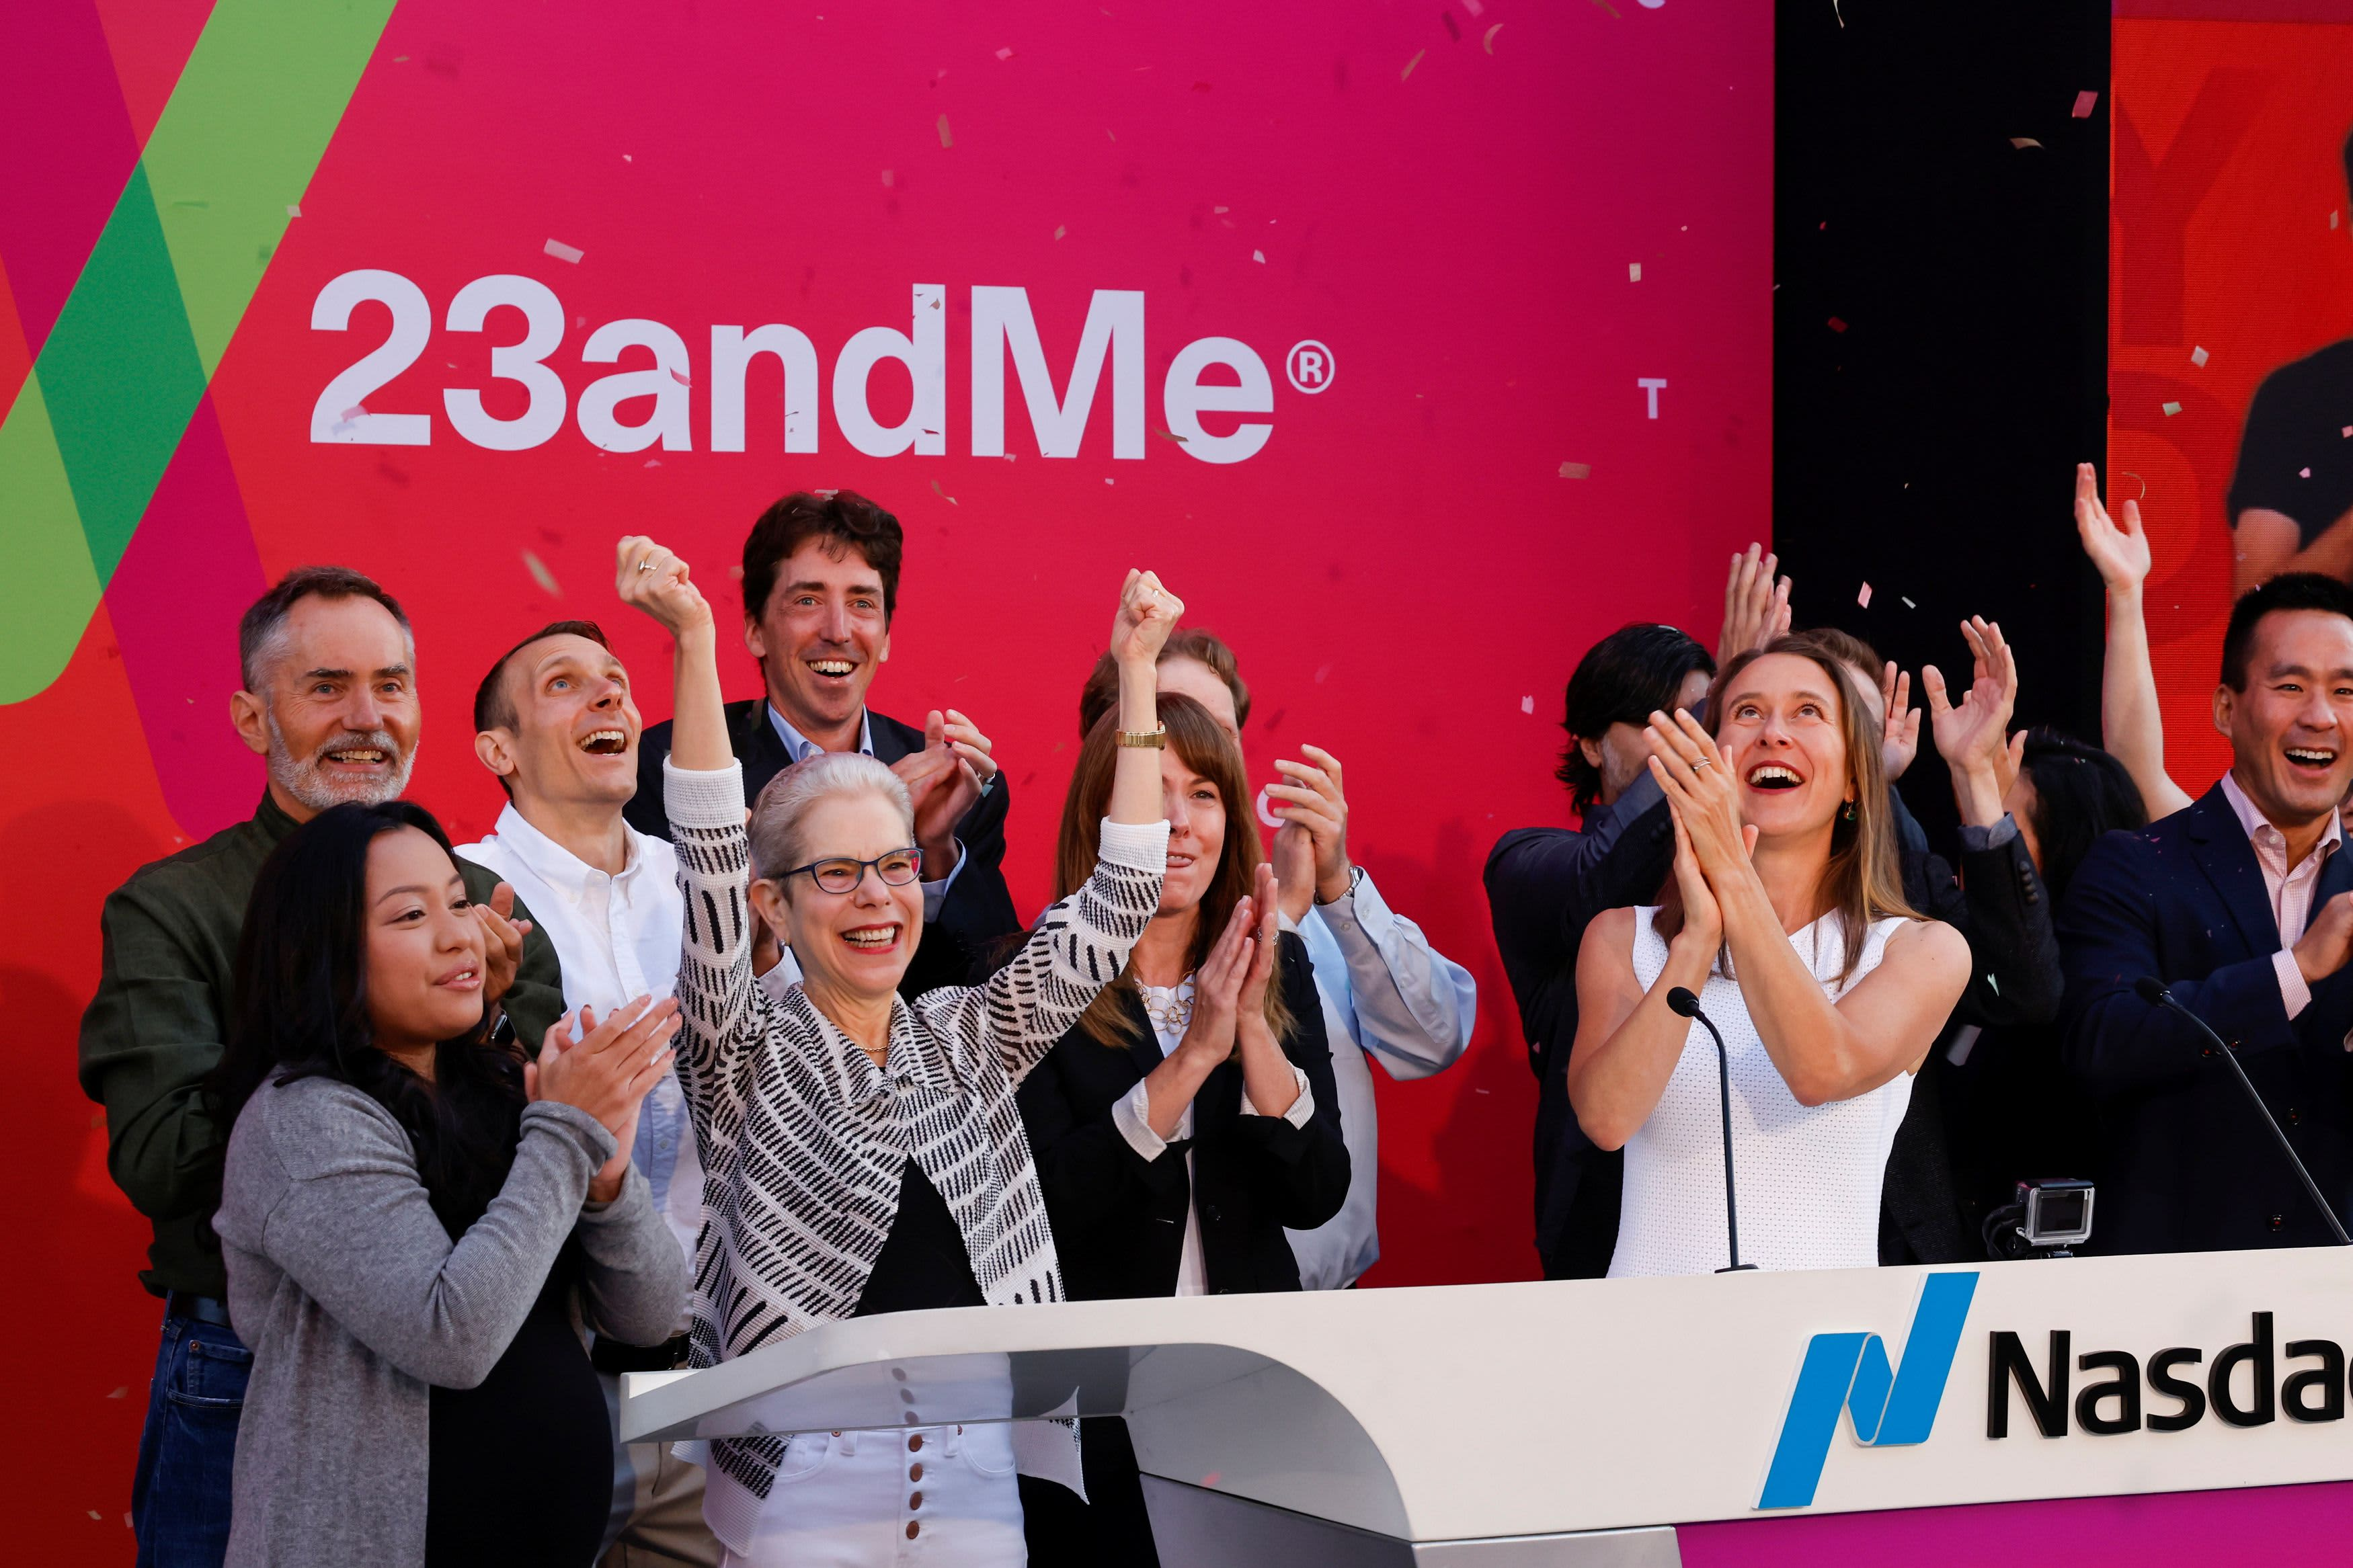 Genetic testing company 23andMe rises in first trade after Richard Branson SPAC merger